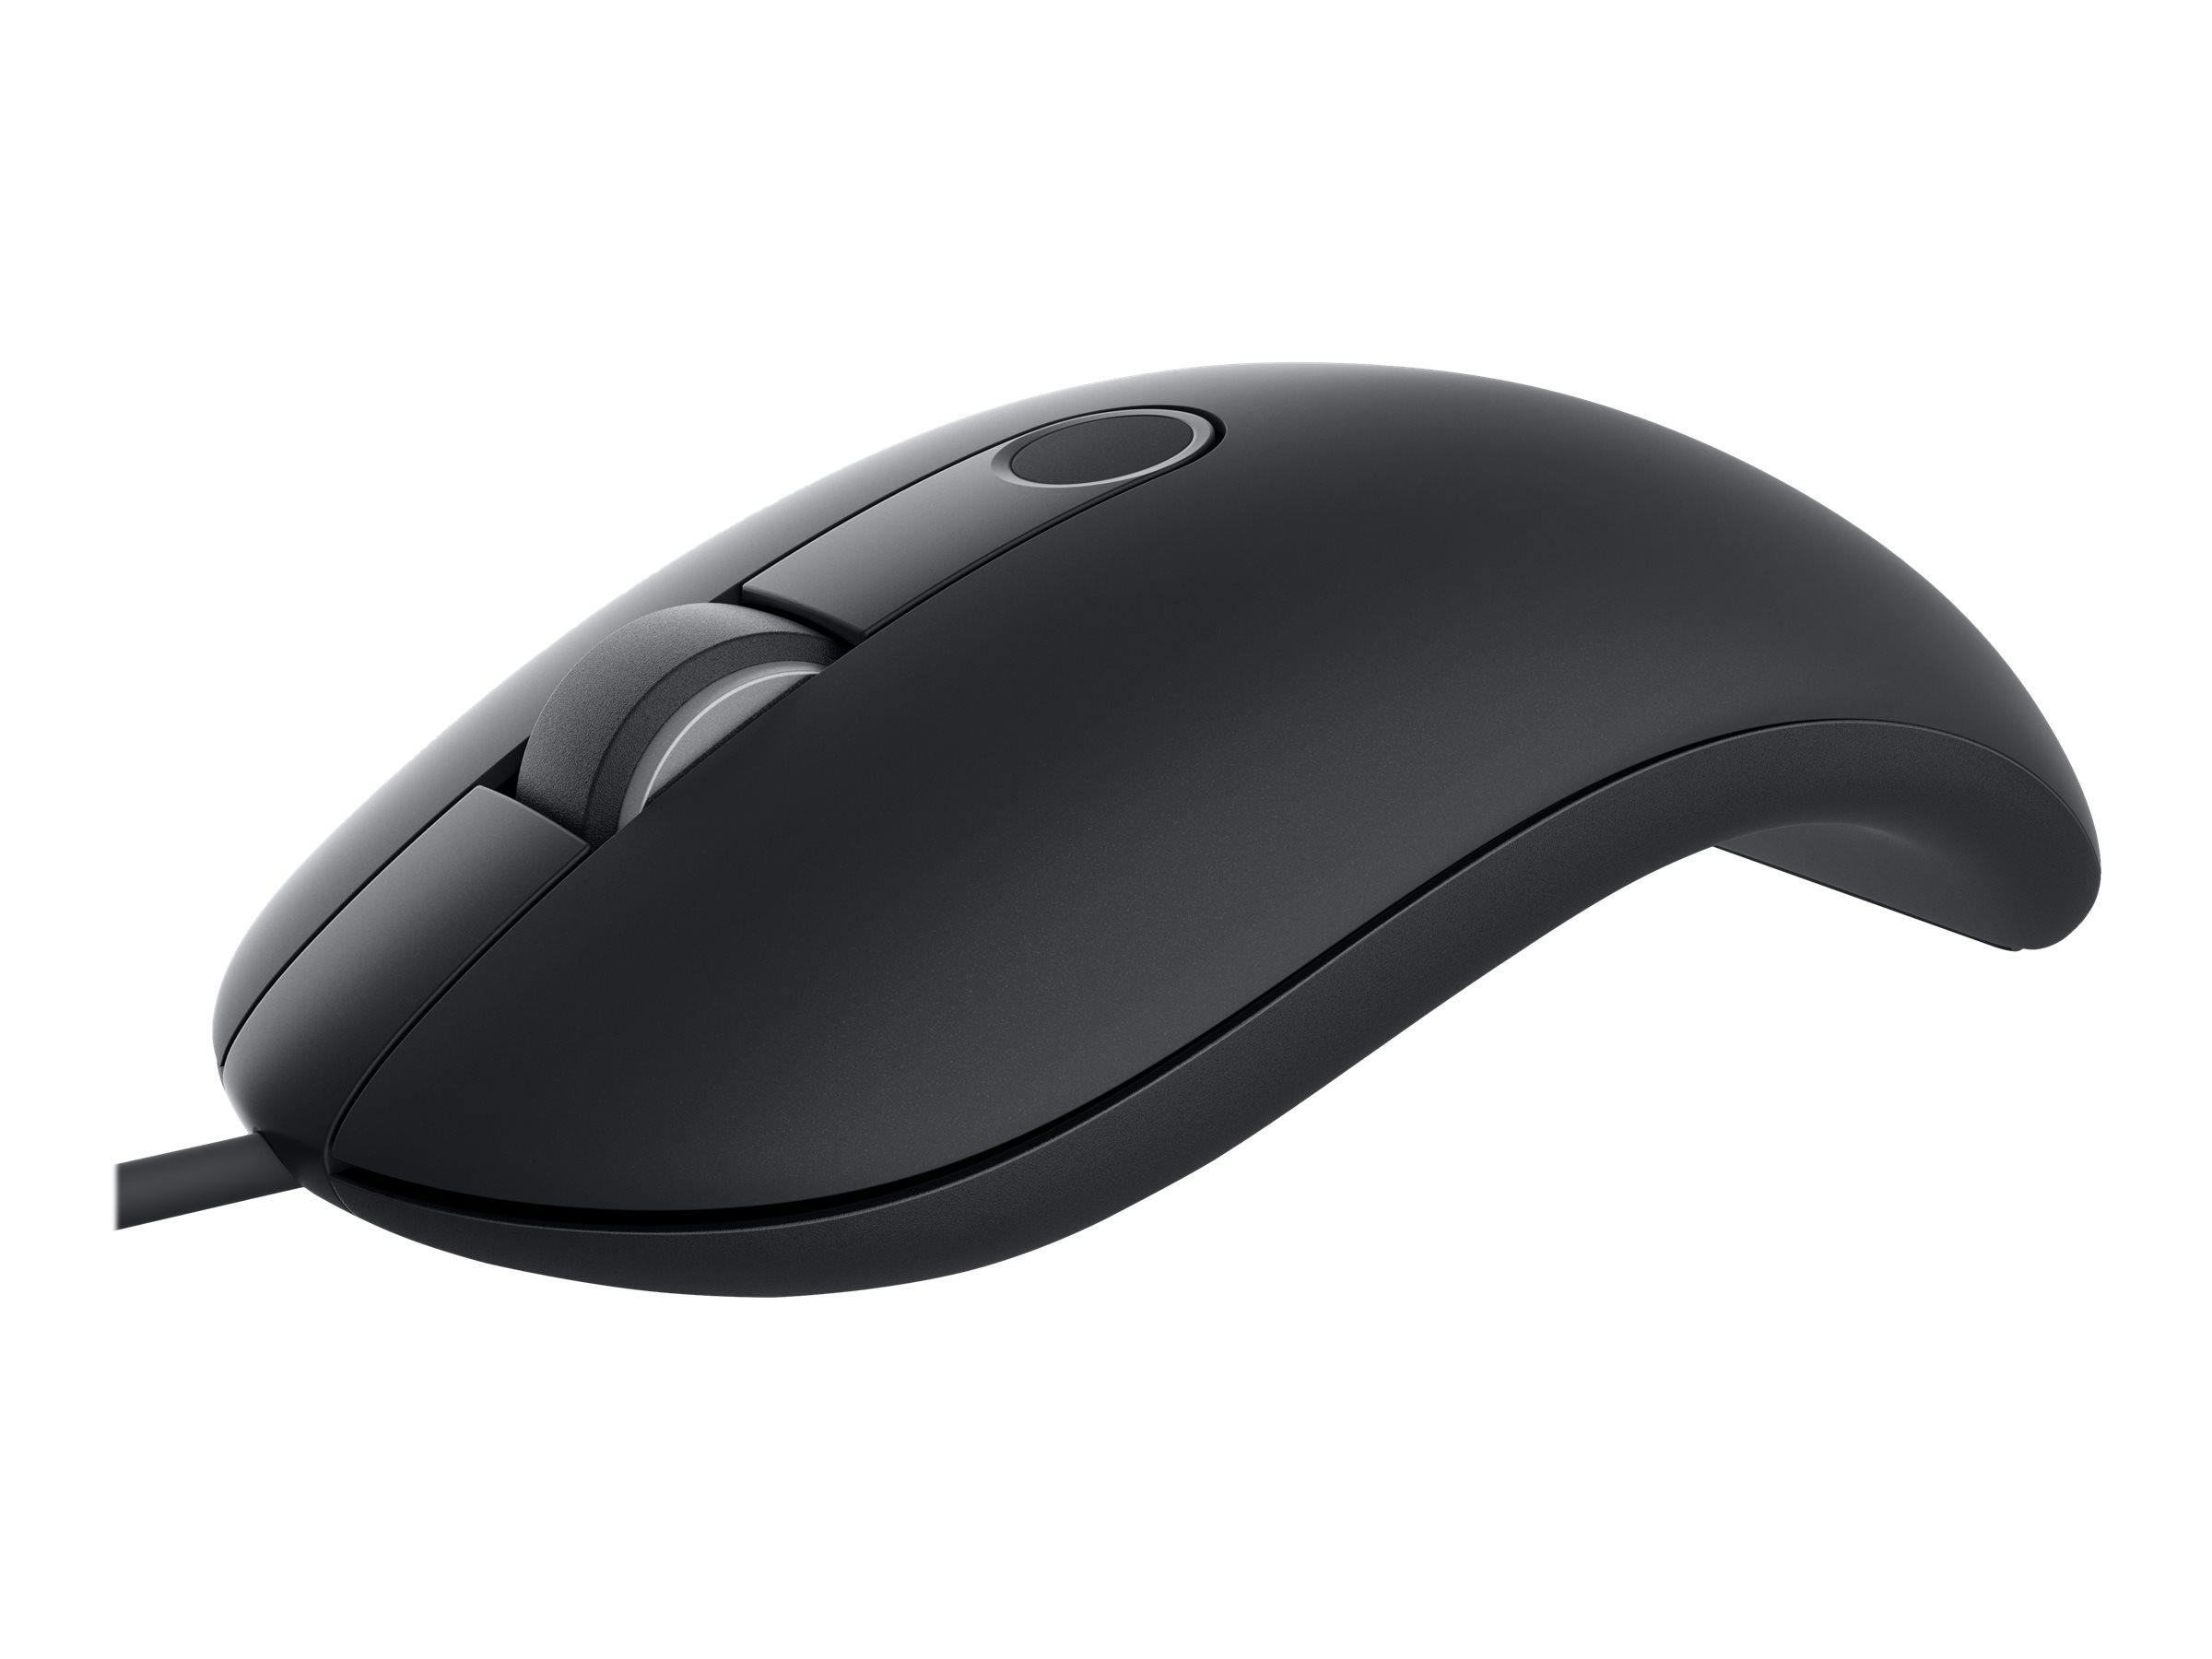 Dell MS819 - mouse - USB 2.0 - black